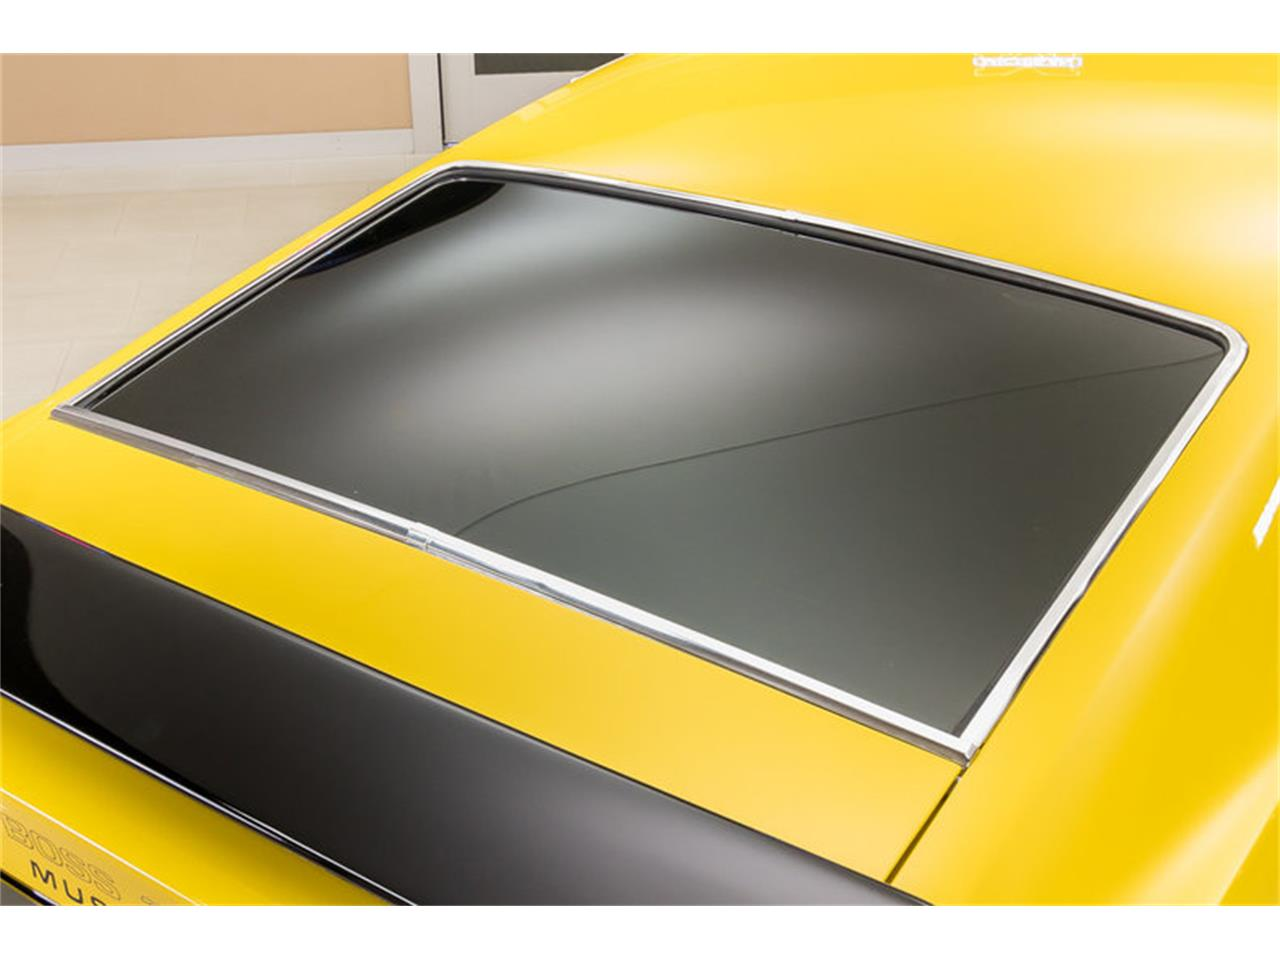 Large Picture of '72 Mustang Boss 351 Recreation - $34,900.00 Offered by Vanguard Motor Sales - JGDO